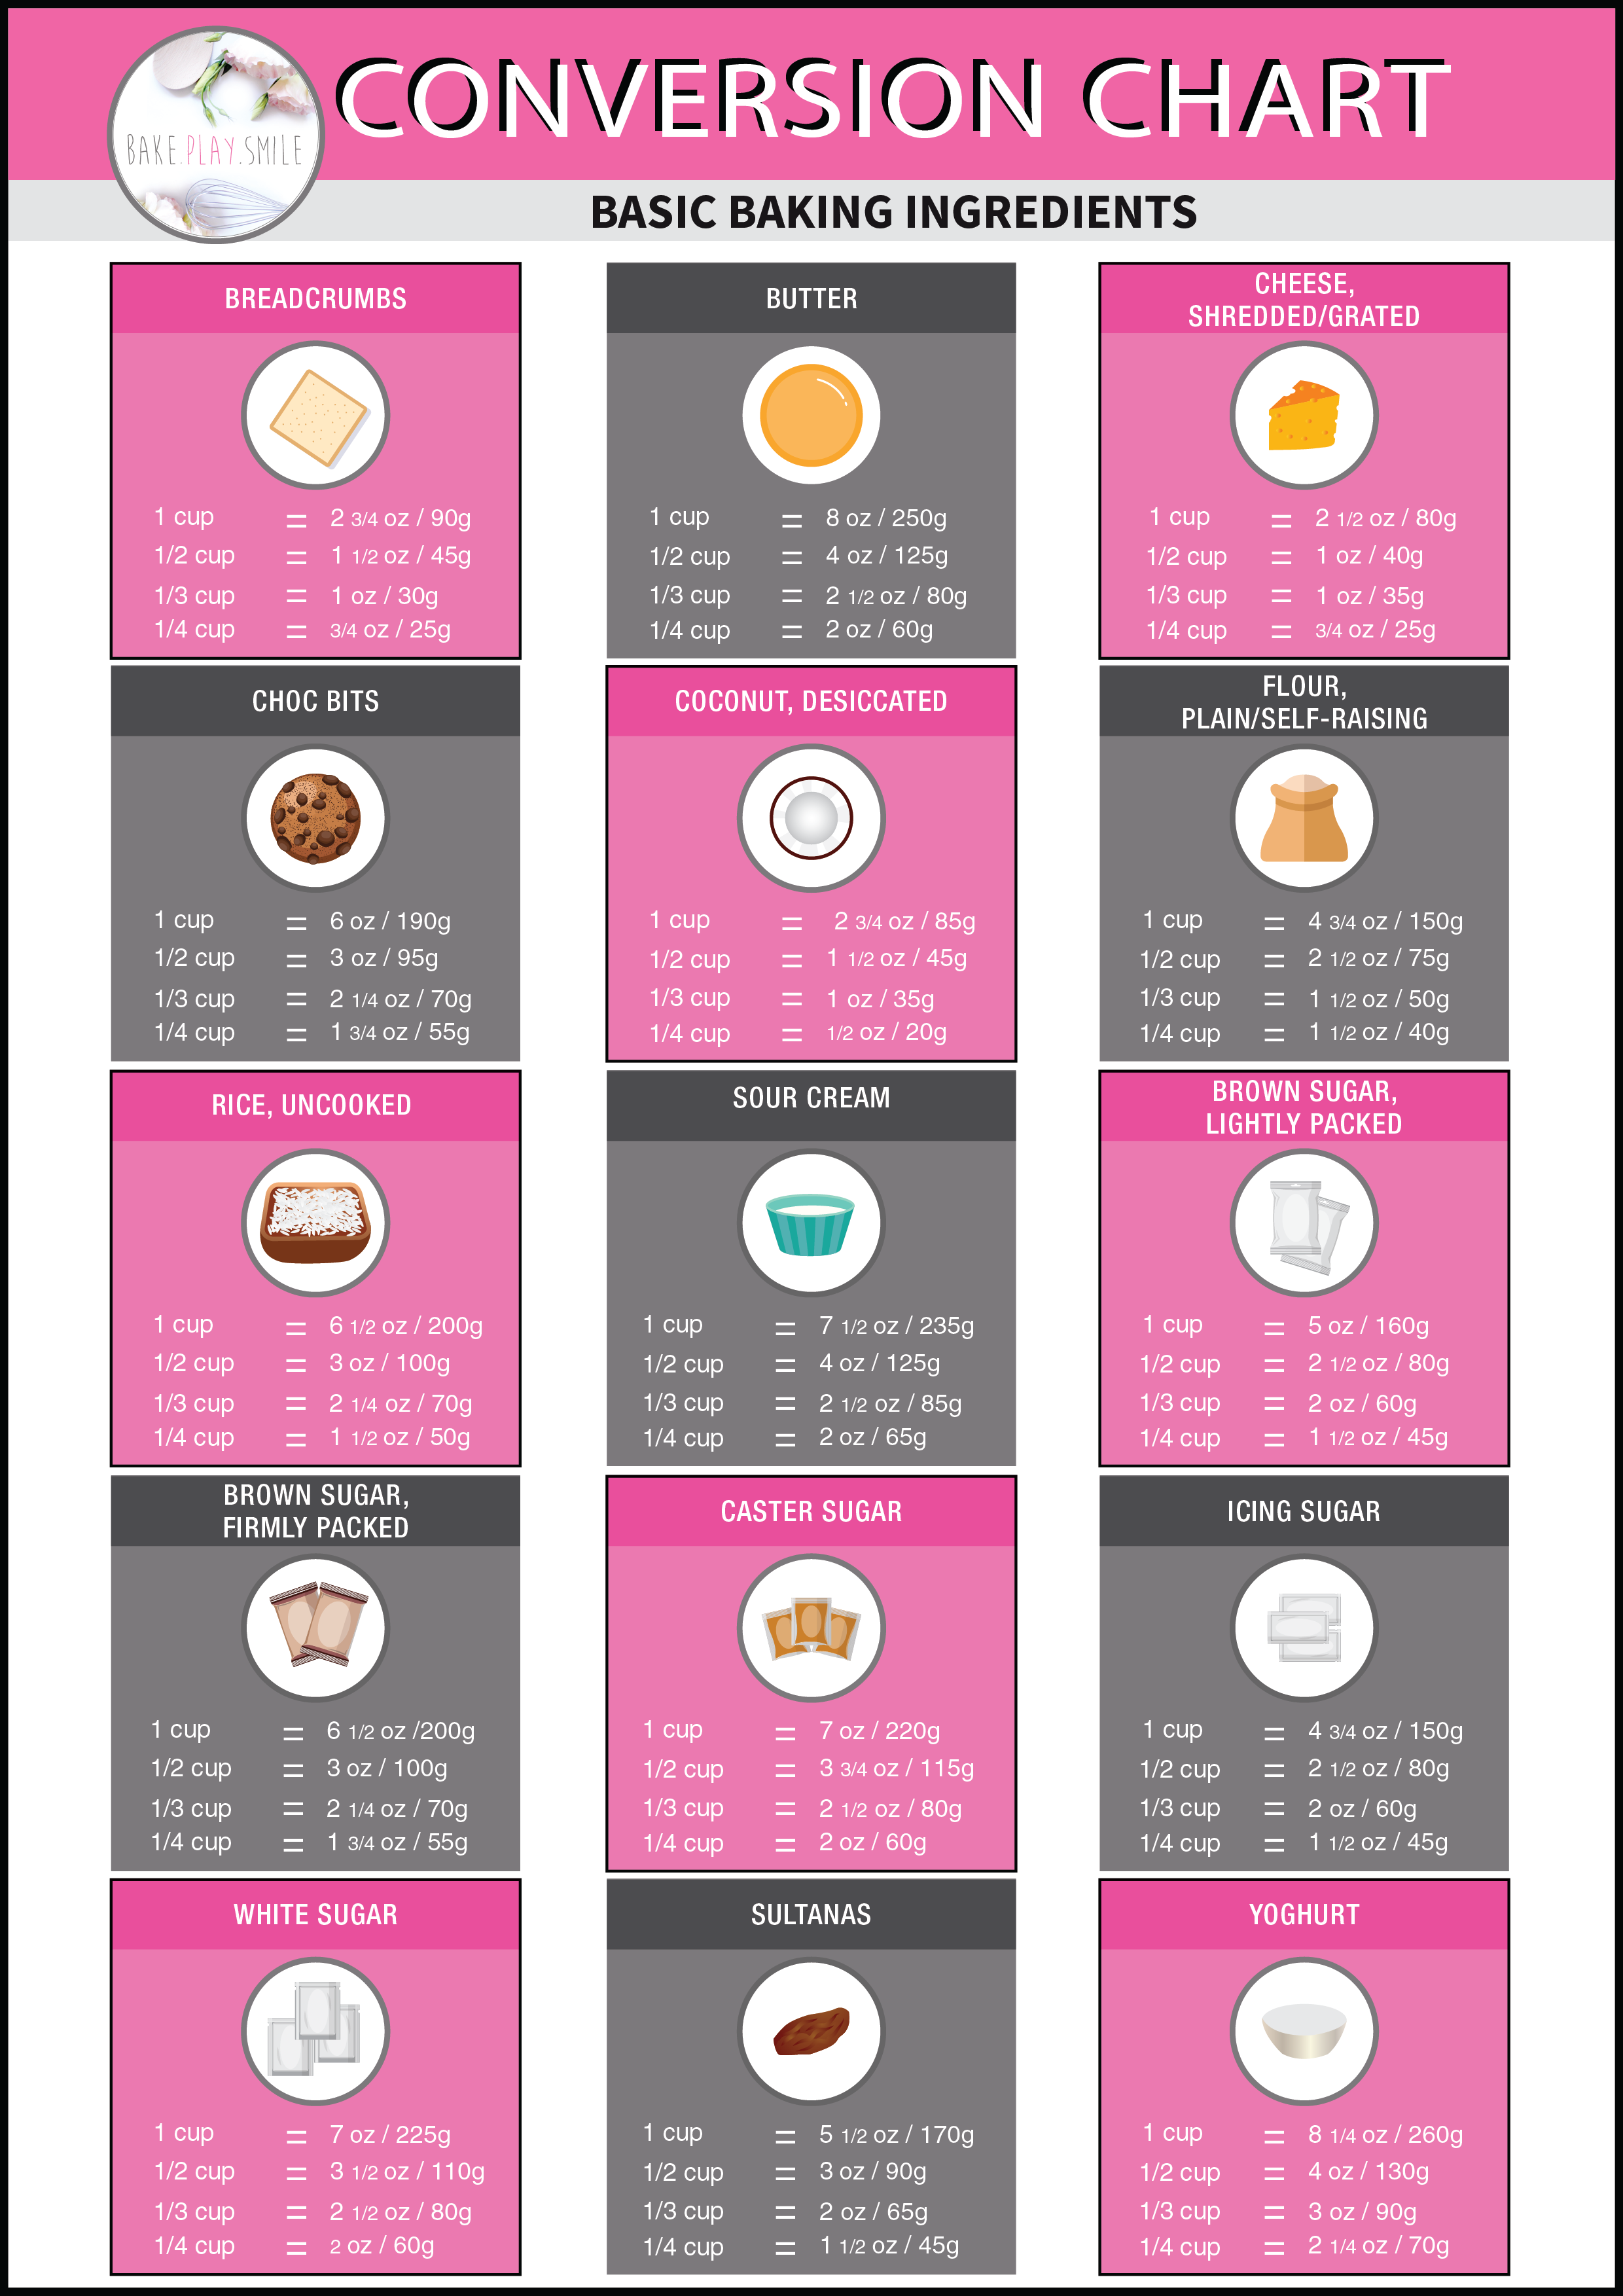 Baking conversion chart cups metric imperial free an easy to use baking conversion chart with all the most common baking ingredients including nvjuhfo Gallery